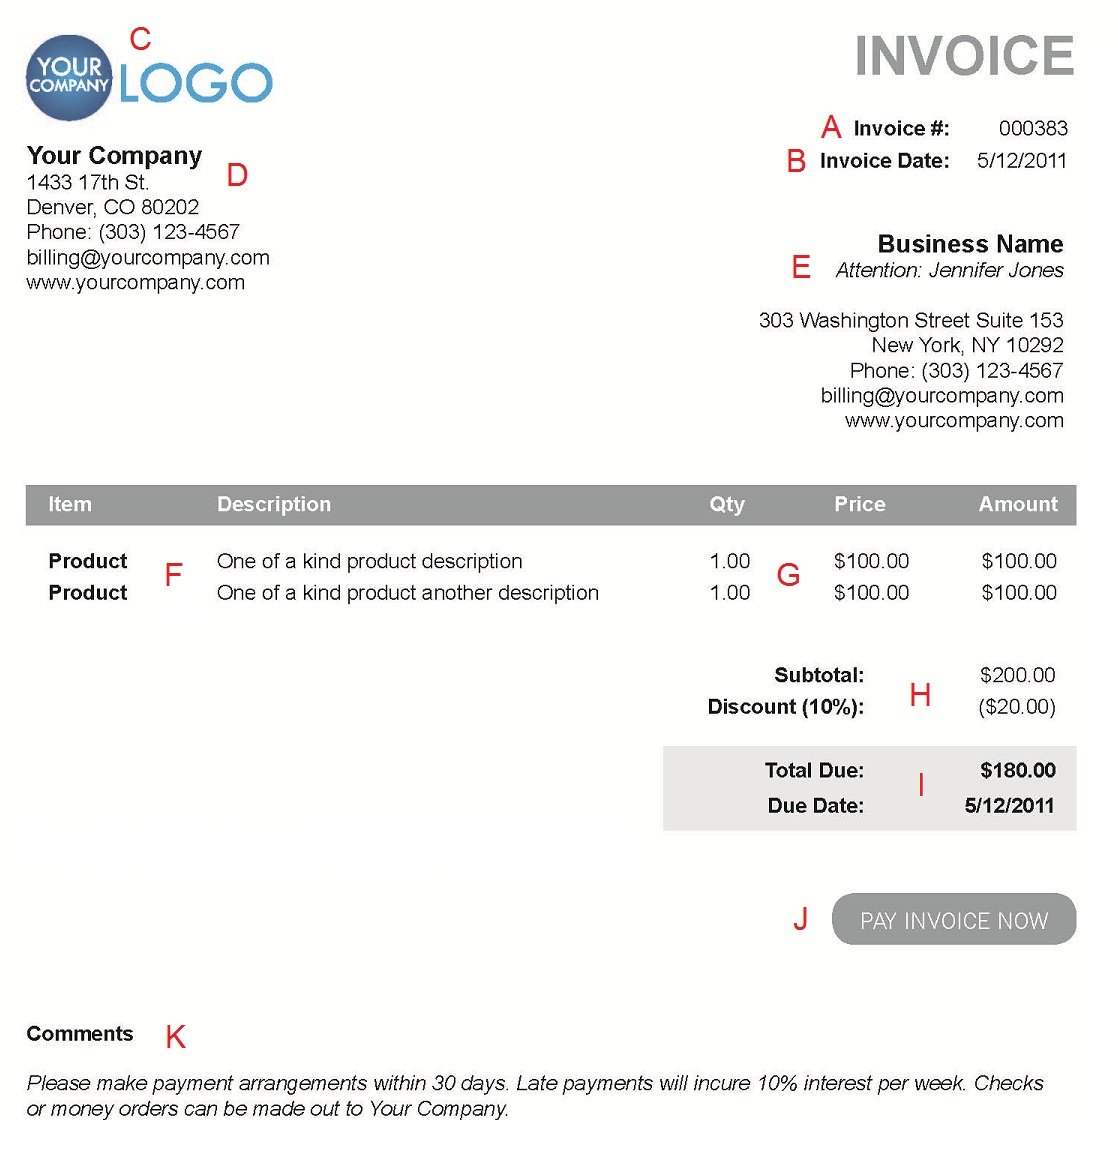 Opposenewapstandardsus  Gorgeous The  Different Sections Of An Electronic Payment Invoice With Foxy A  With Appealing How Much Is Certified Mail Return Receipt Also Creating A Receipt In Addition Samples Of Receipts And Google Receipt Template As Well As Please Confirm The Receipt Additionally Carbon Receipt Book From Paysimplecom With Opposenewapstandardsus  Foxy The  Different Sections Of An Electronic Payment Invoice With Appealing A  And Gorgeous How Much Is Certified Mail Return Receipt Also Creating A Receipt In Addition Samples Of Receipts From Paysimplecom